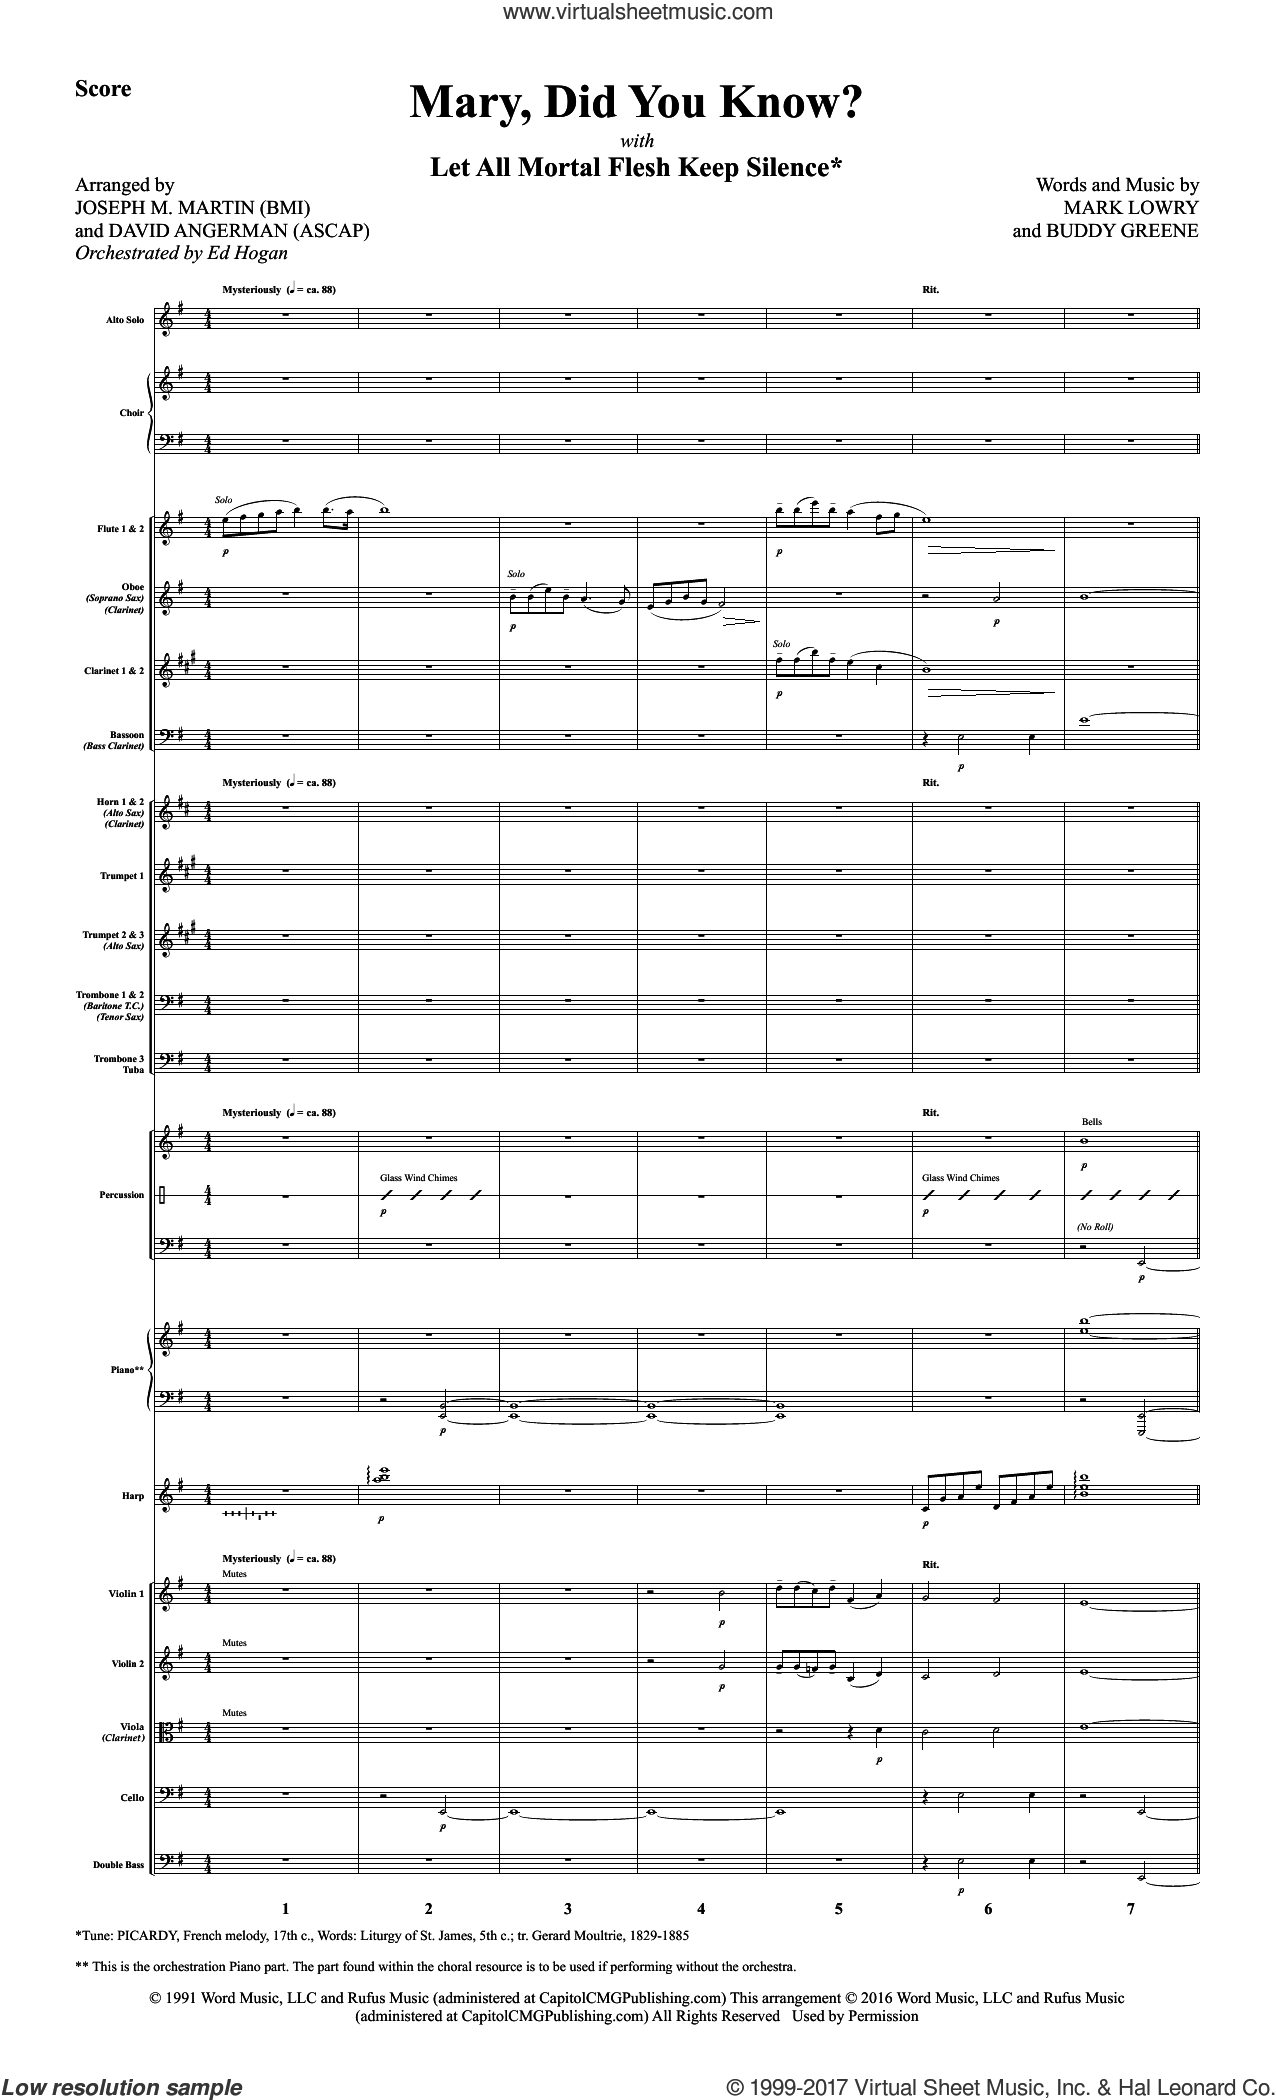 Mary, Did You Know? (COMPLETE) sheet music for orchestra/band by David Angerman, Buddy Greene, Kathy Mattea and Mark Lowry, intermediate skill level